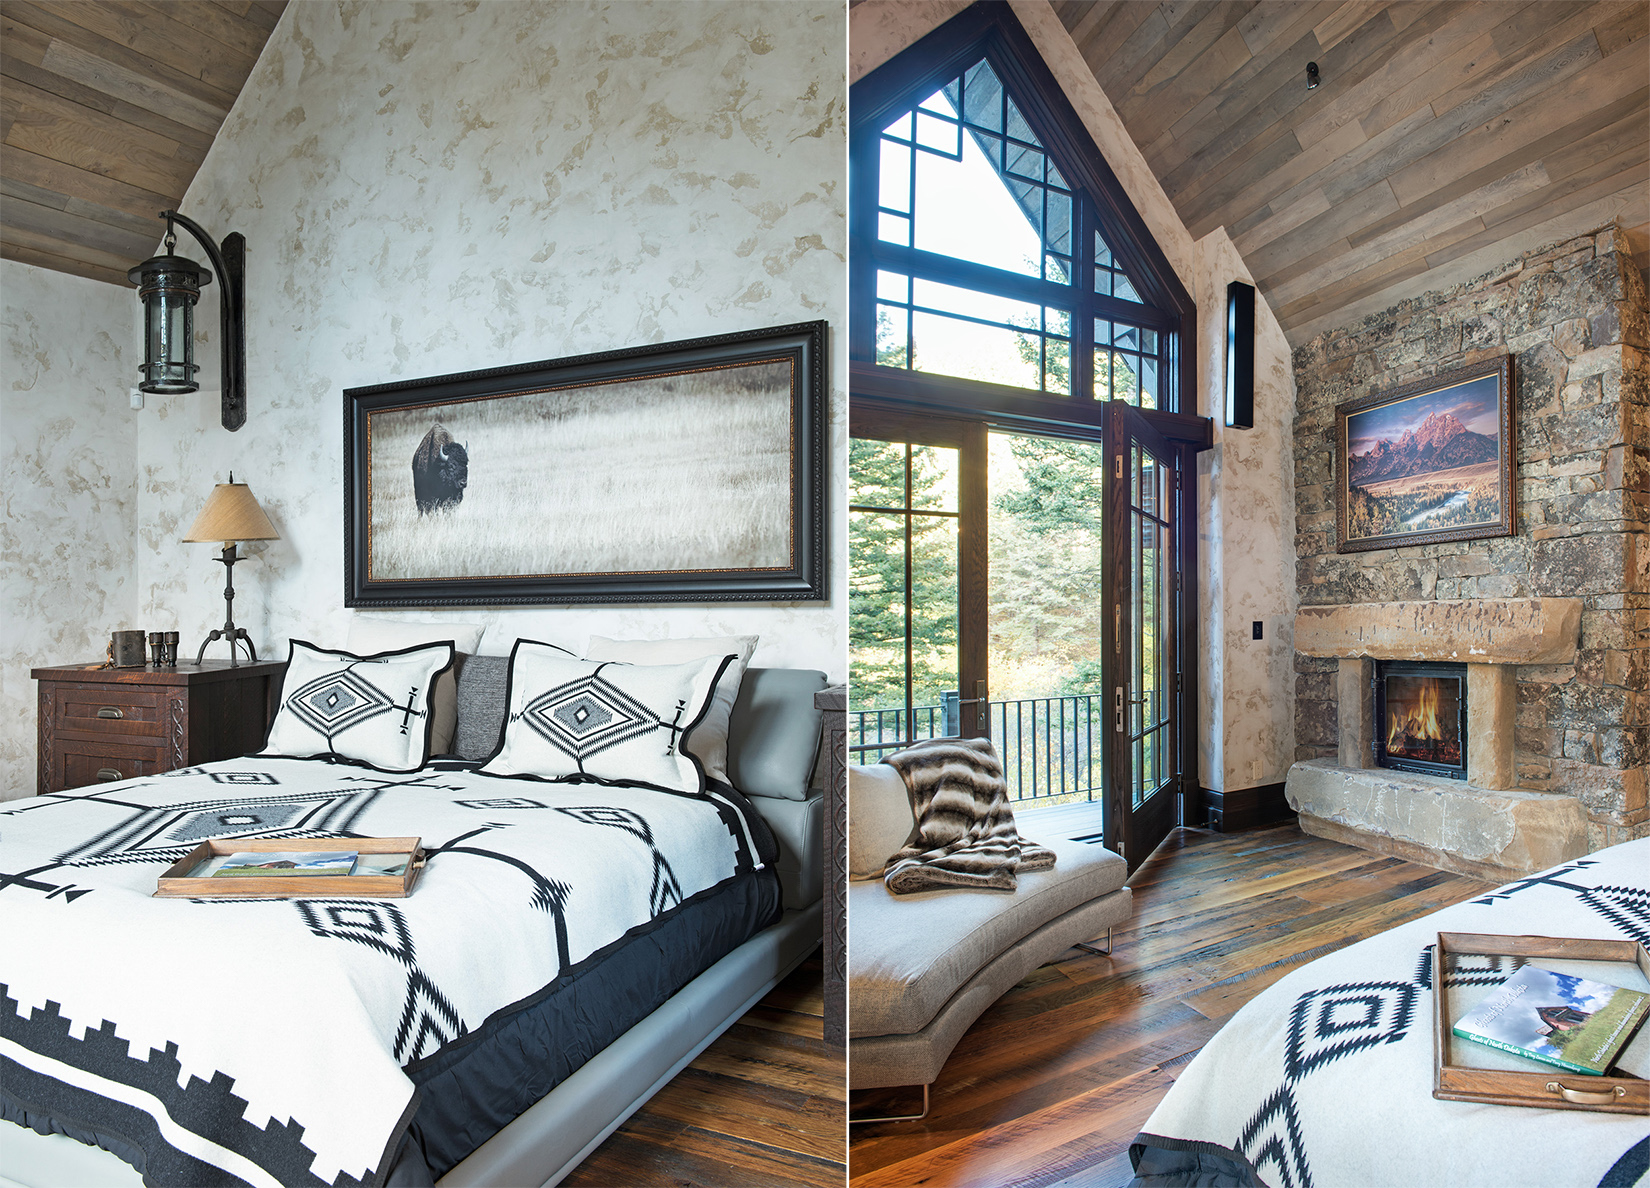 The vaulted ceiling and large windows make this a master bedroom I would love to come home to! - plus I LOVE the bedding and the photo of the buffalo!